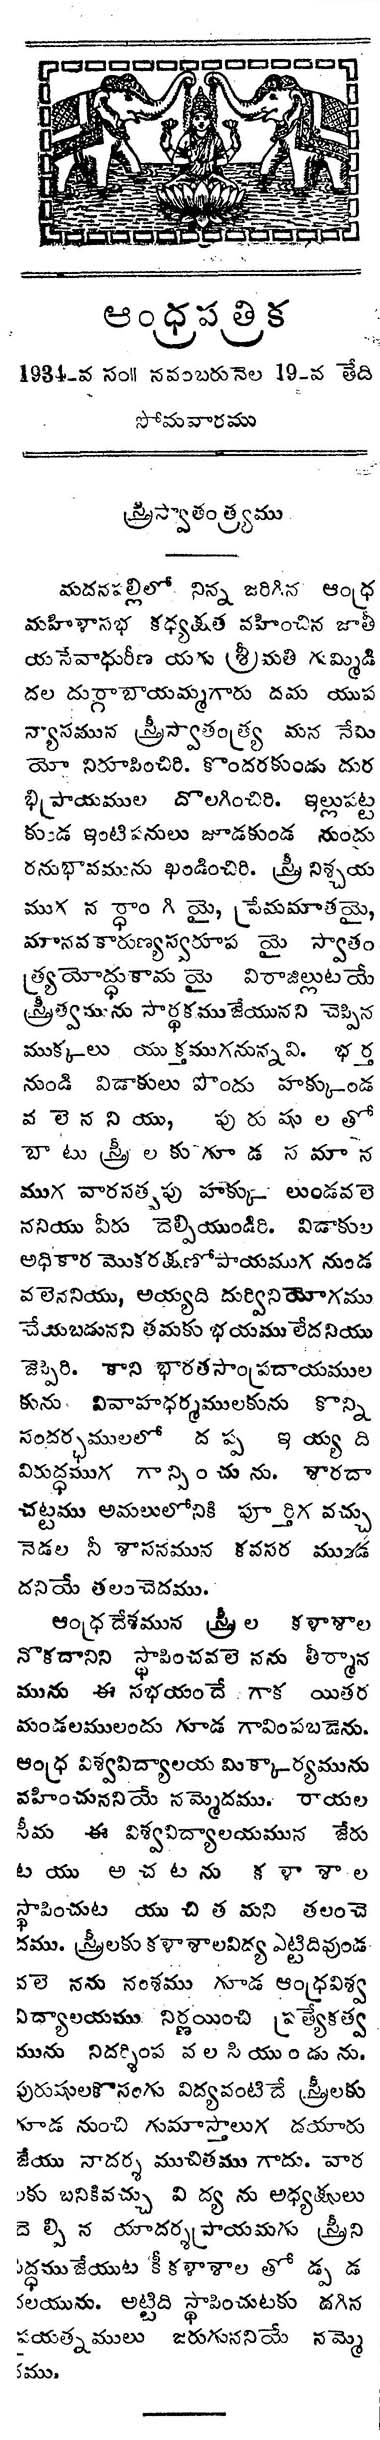 Madanapalle Women's Conference 19 11 1934 1R